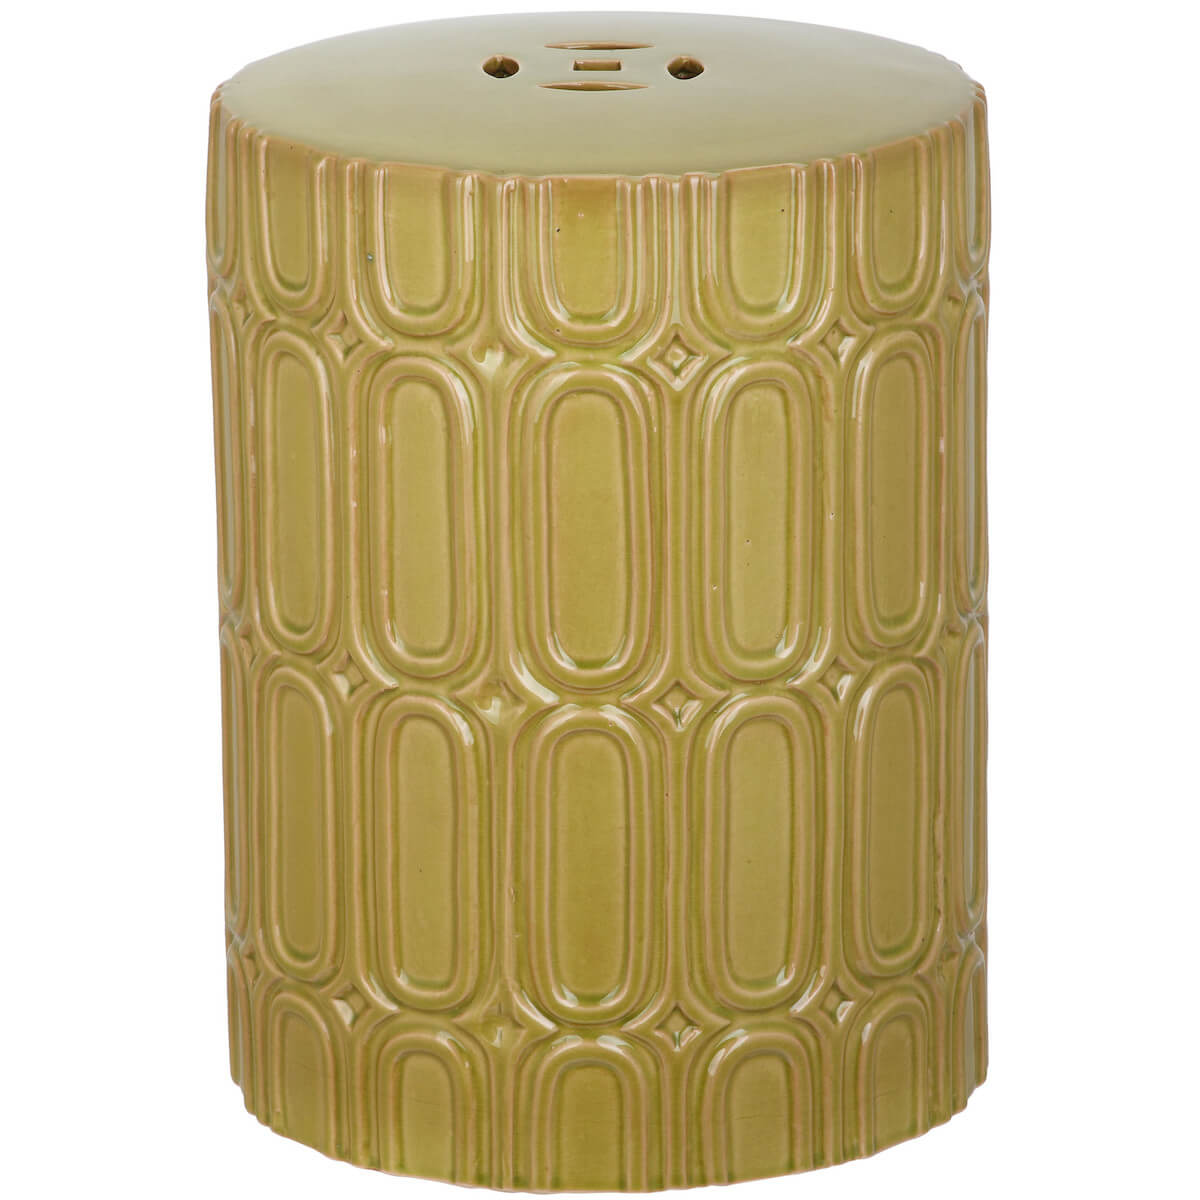 Art Deco Garden Stool